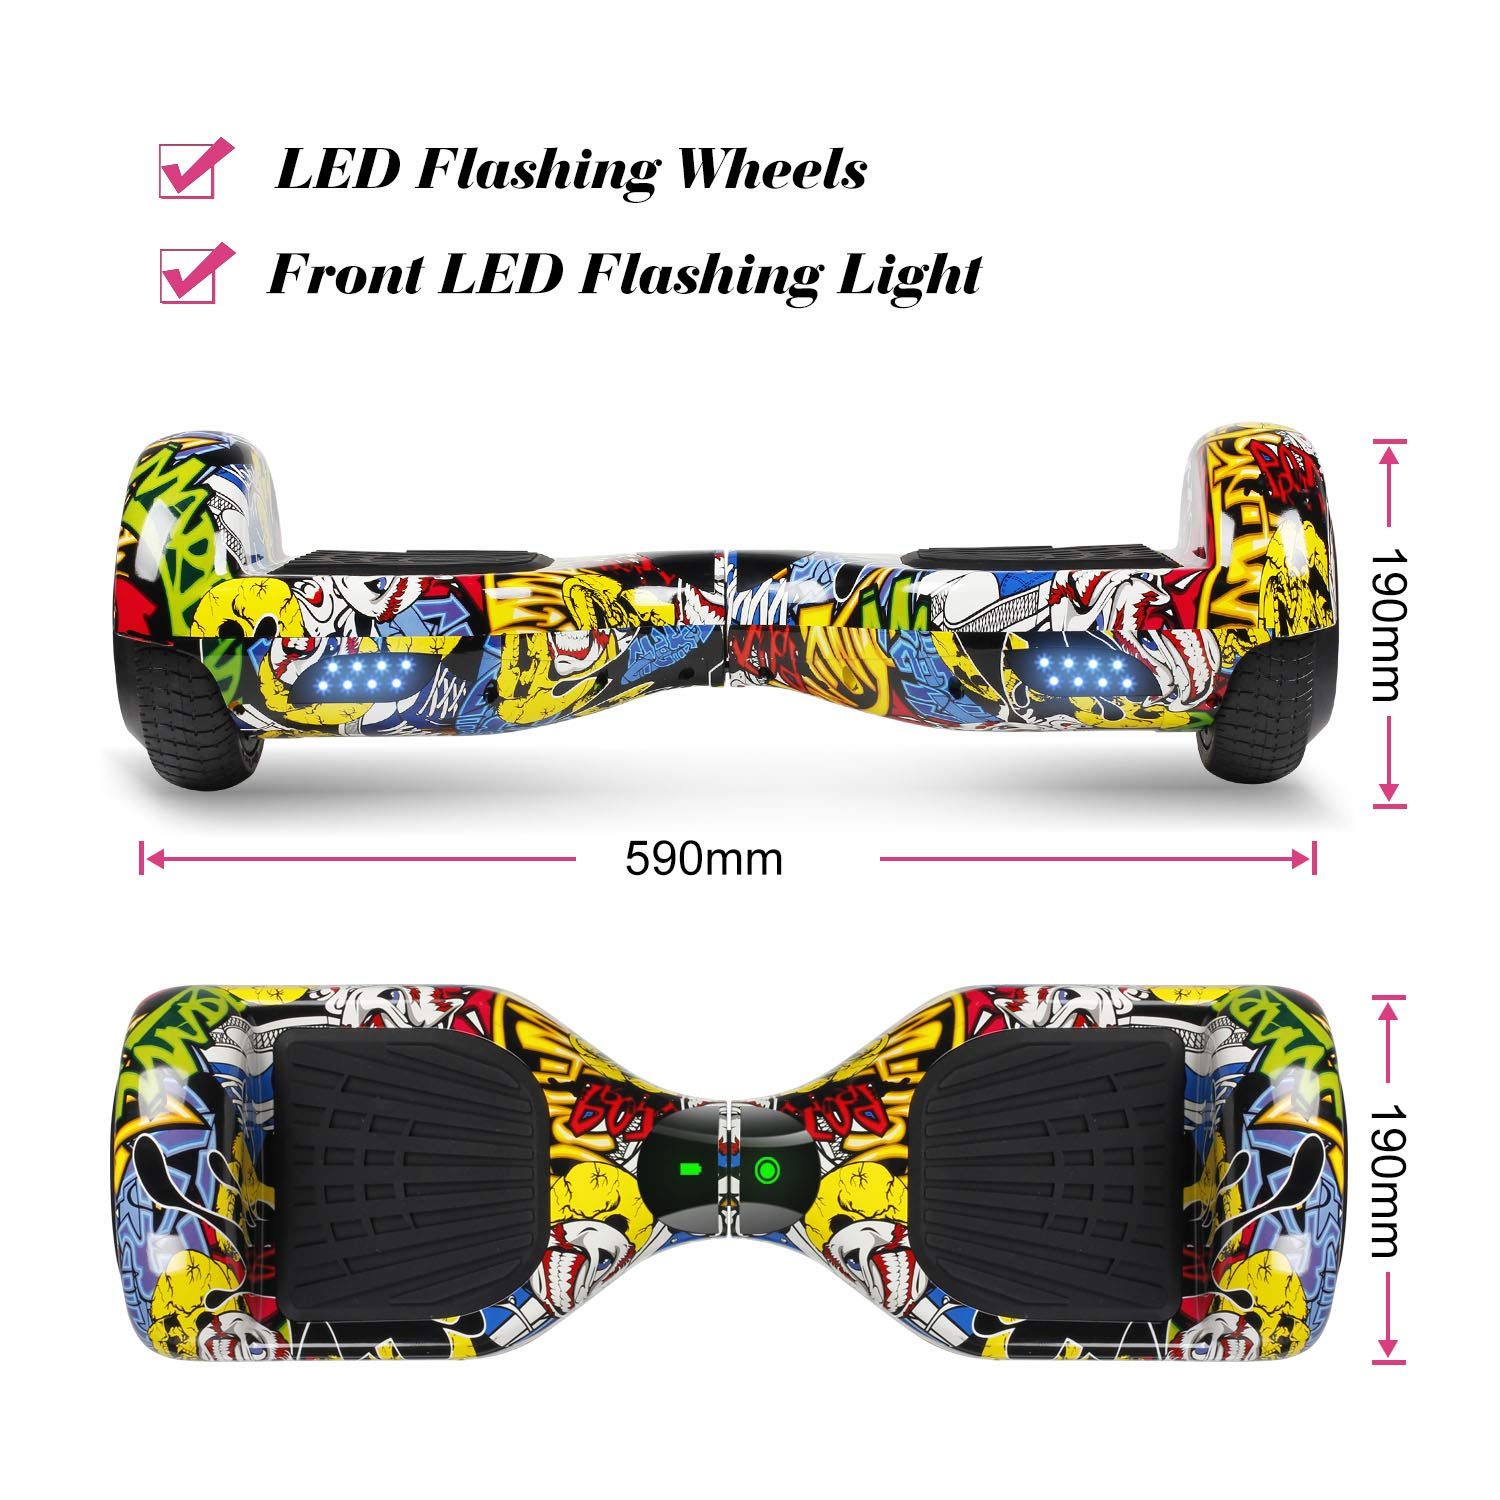 SISIGAD Hoverboard Self Balancing Scooter 6.5'' Two-Wheel Self Balancing Hoverboard with LED Lights Electric Scooter for Adult Kids Gift UL 2272 Certified Fun Edition - Graffiti by SISIGAD (Image #2)